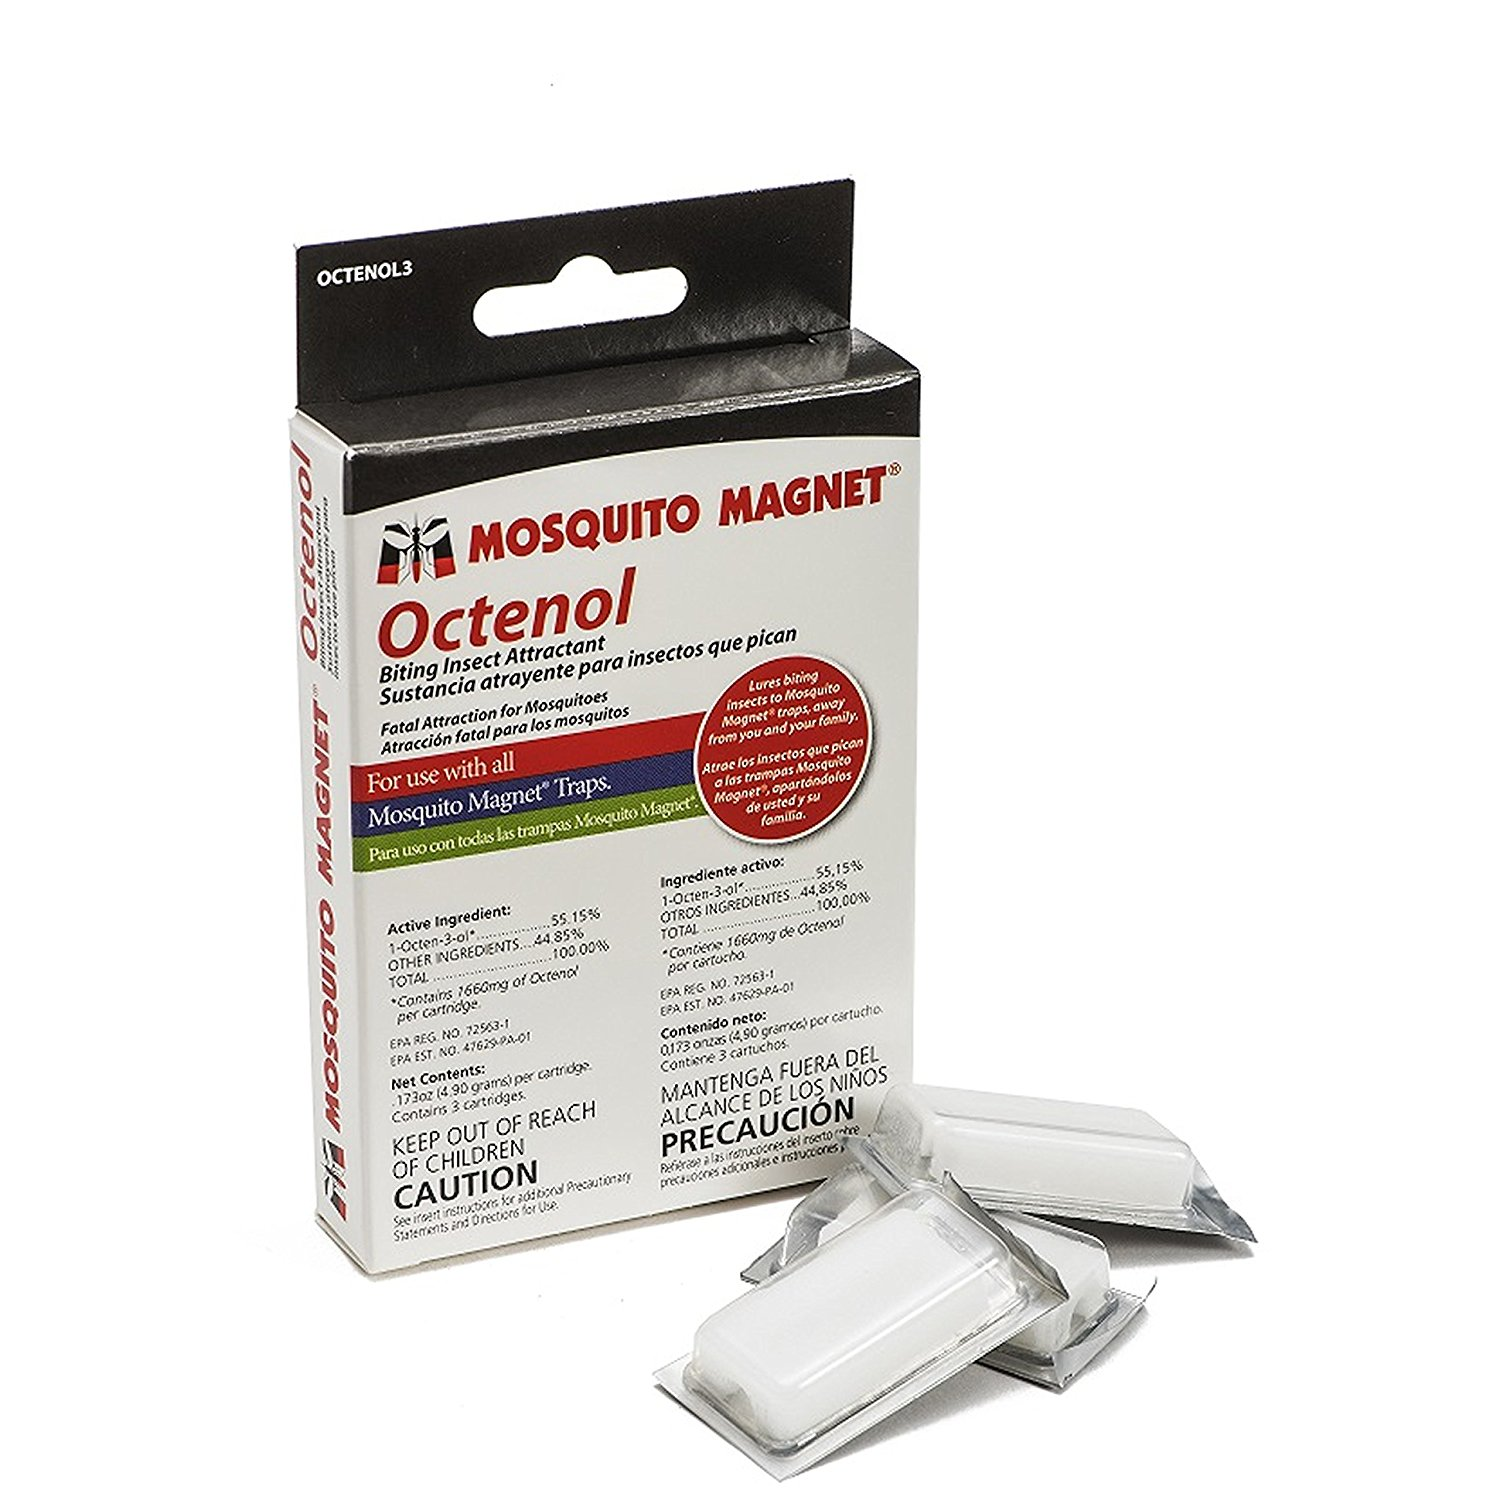 Mosquito Magnet OCTENOL3 Octenol Biting Insect Attractant